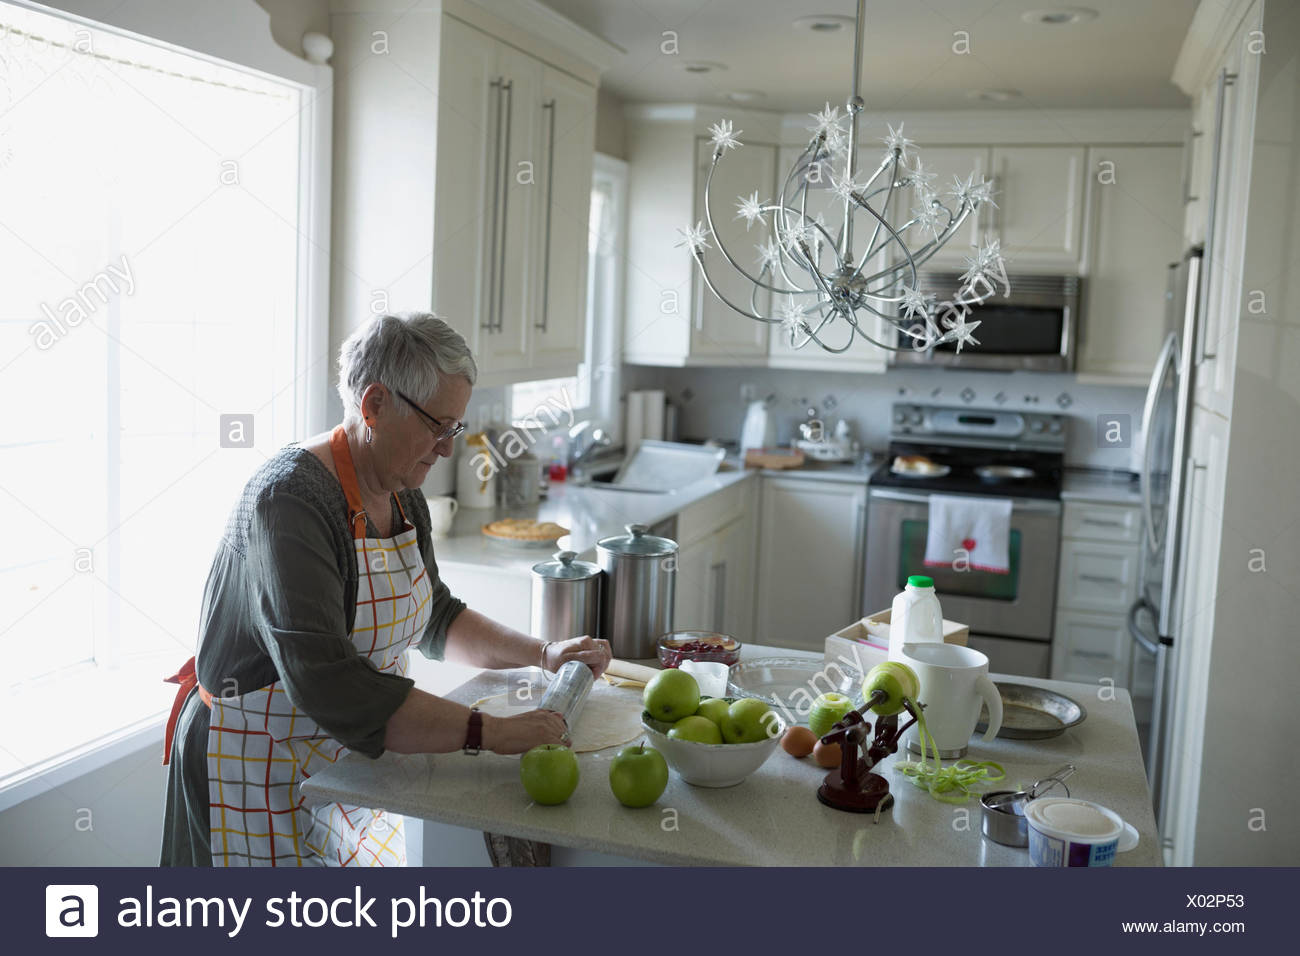 Senior woman rolling pie crust dough with rolling pin in kitchen - Stock Image